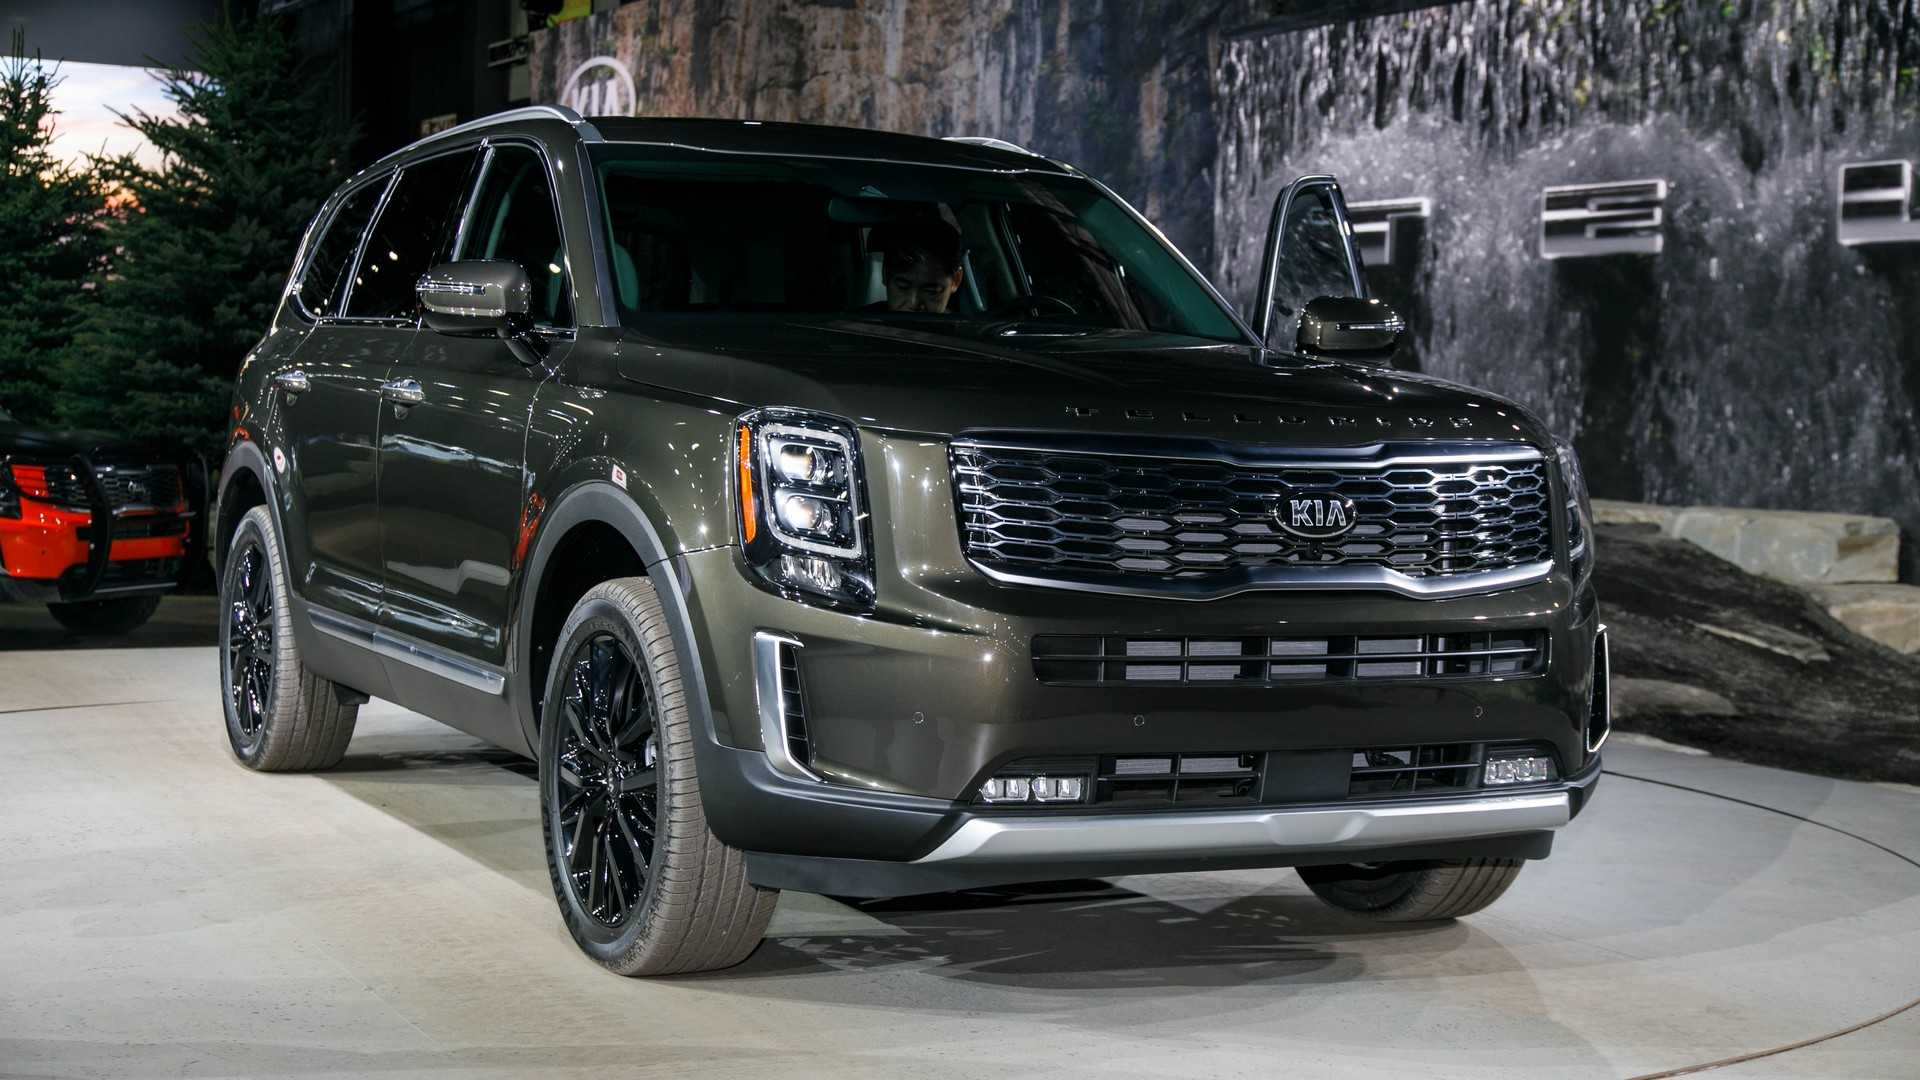 18 The 2020 Kia Telluride Exterior New Review for 2020 Kia Telluride Exterior